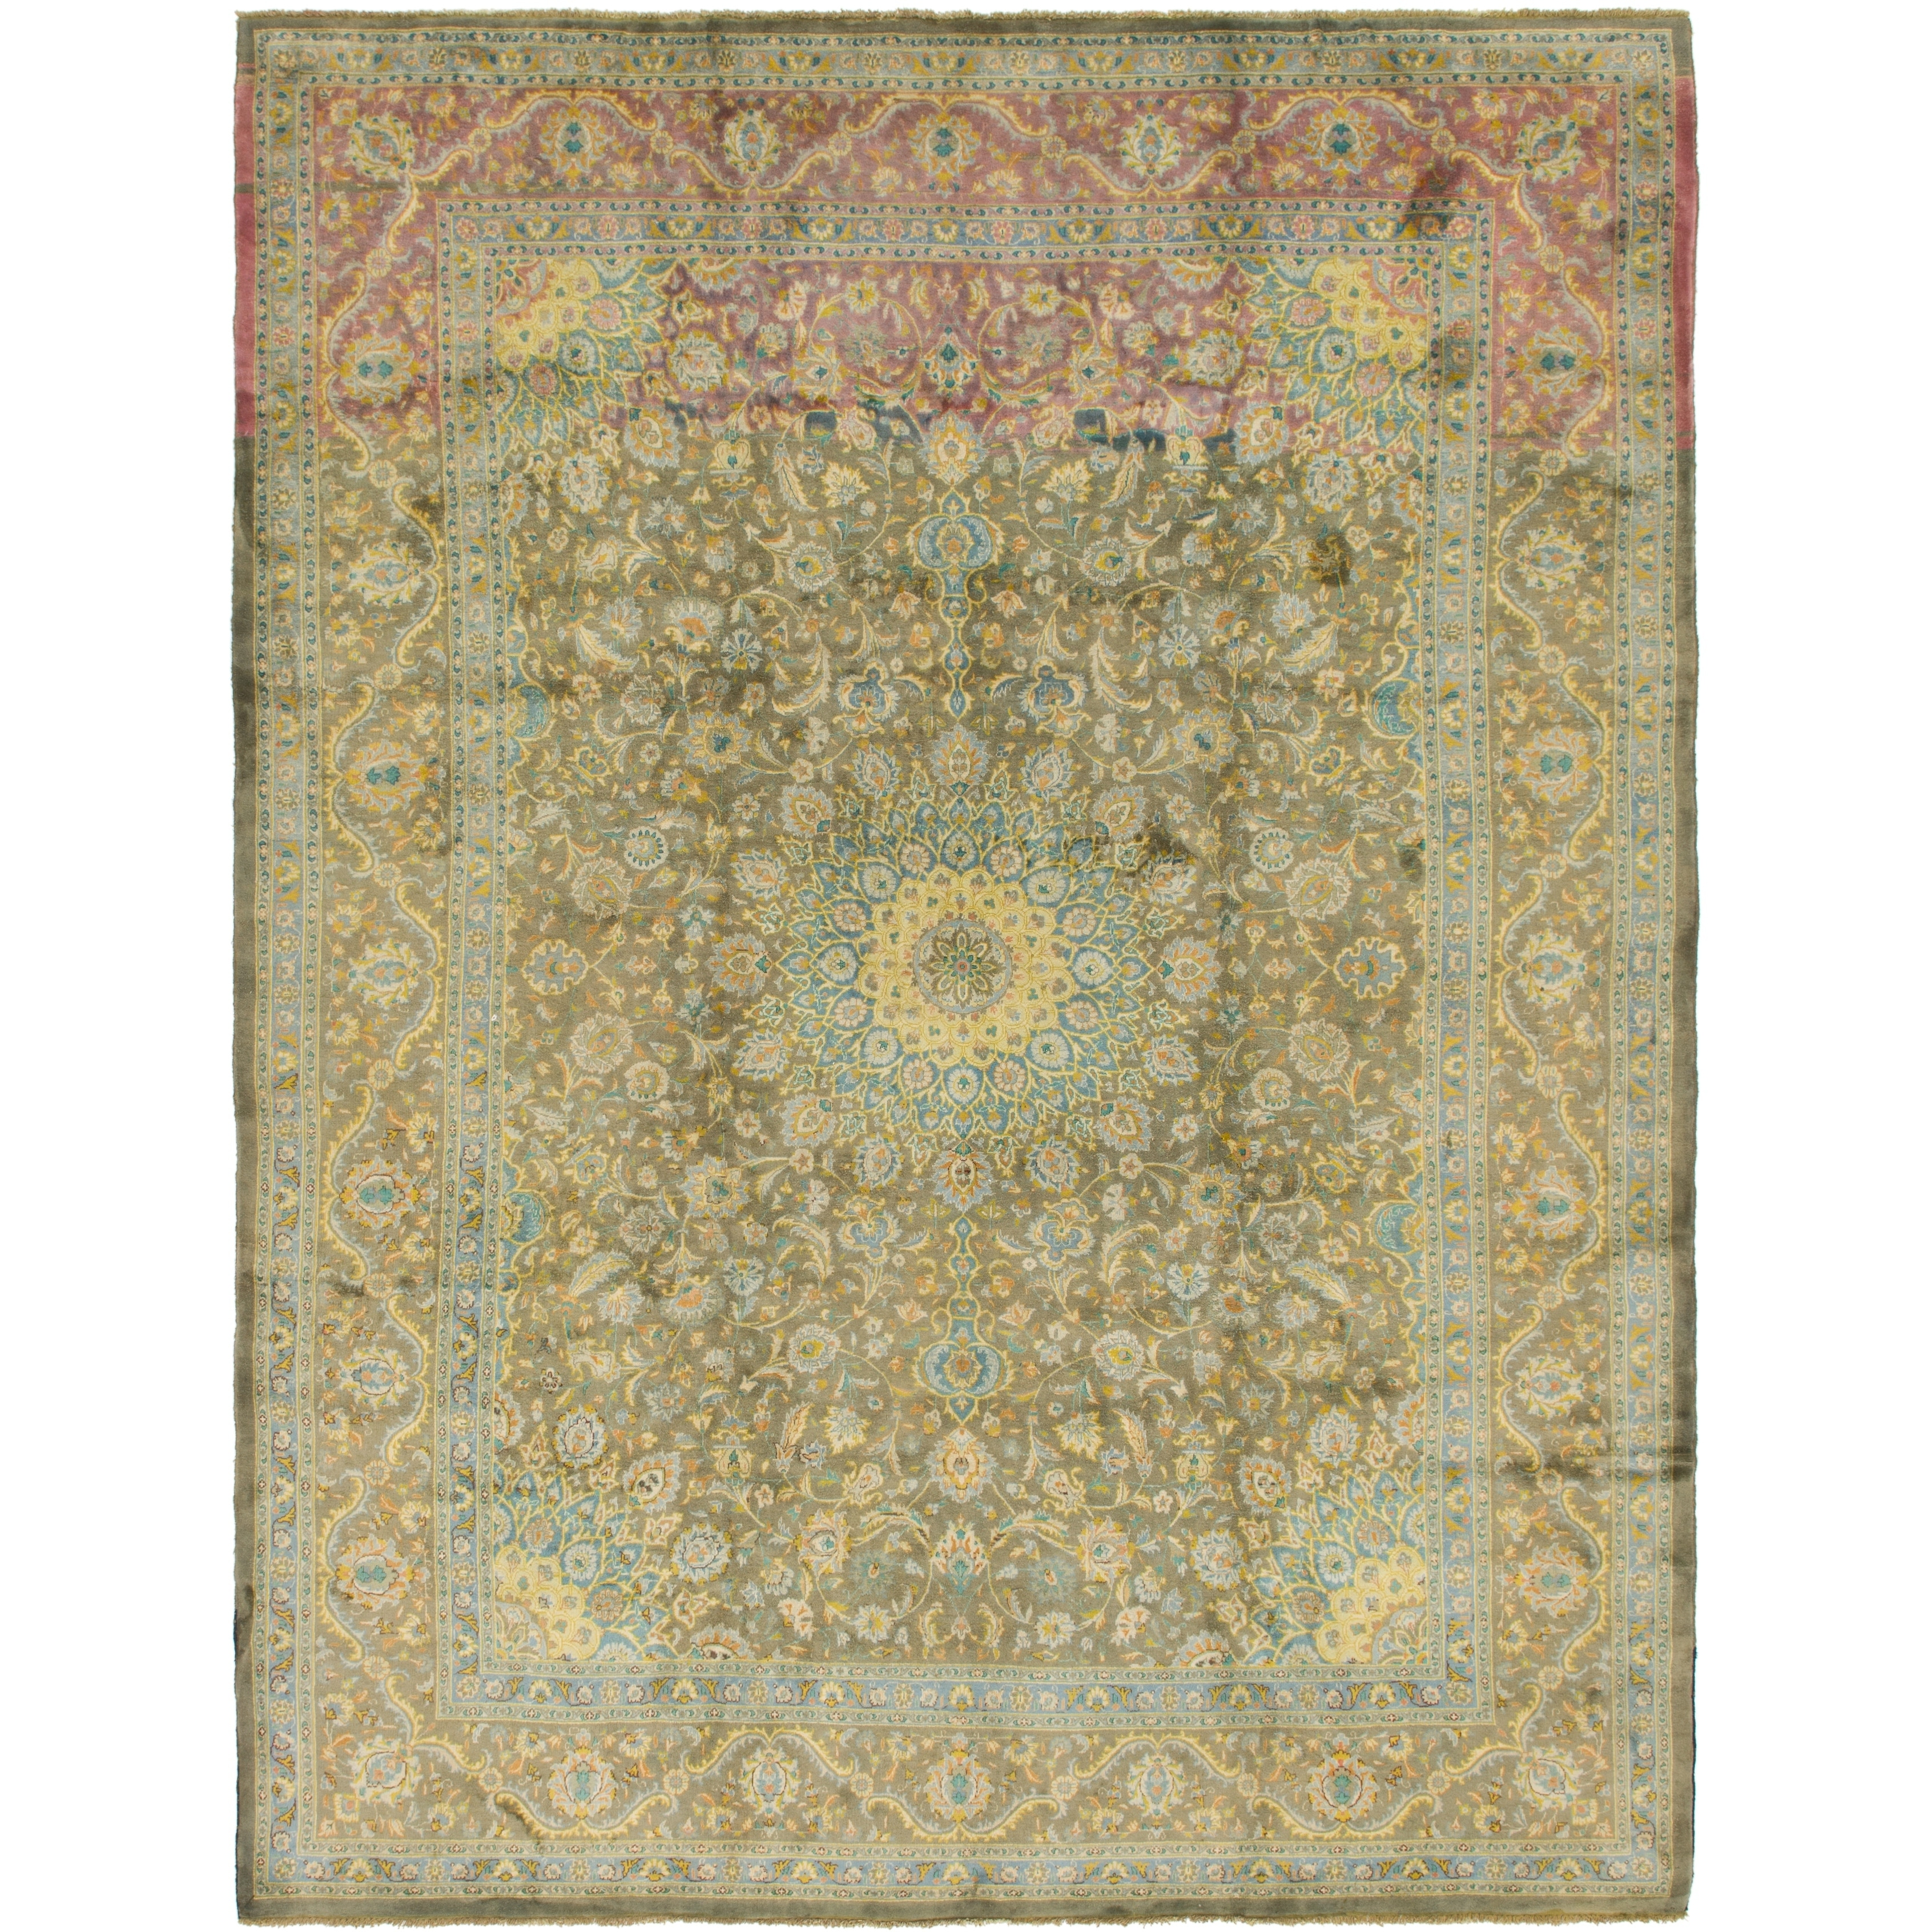 Hand Knotted Kashmar Semi Antique Wool Area Rug - 9 9 x 12 10 (Olive - 9 9 x 12 10)